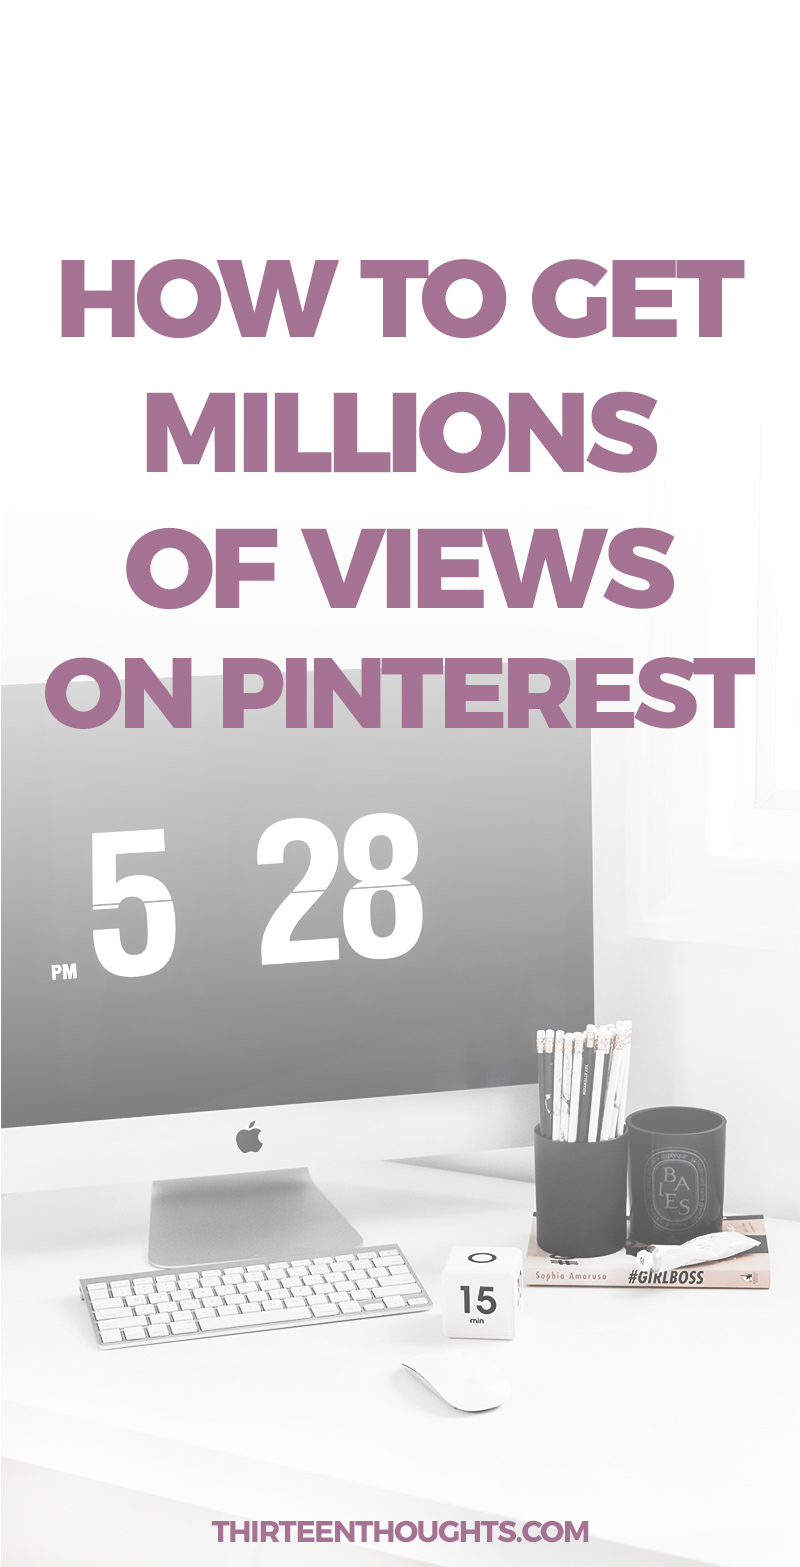 How to get millions of views on #Pinterest | Pinterest tips | blog tips | Pinterest tips for bloggers | blogging tips | #blogging tips for beginners | how to use Pinterest for your blog | how to get repins | #blog tips | #Blogging tips #pinterest marketing #marketing #onlinebusiness